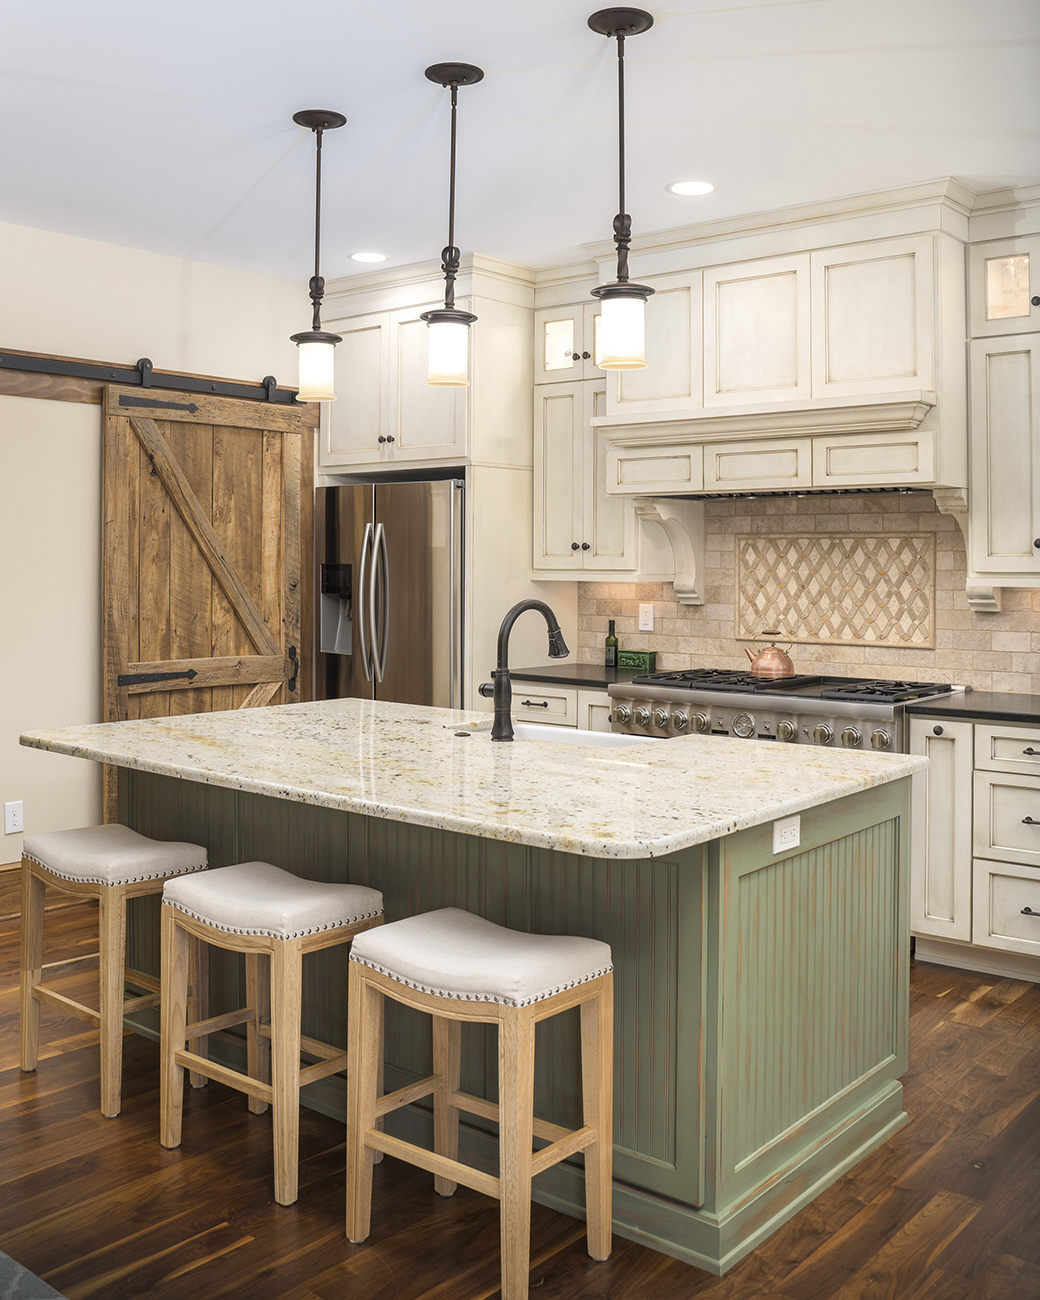 custom kitchen with natural wooden sliding pantry doors and green island